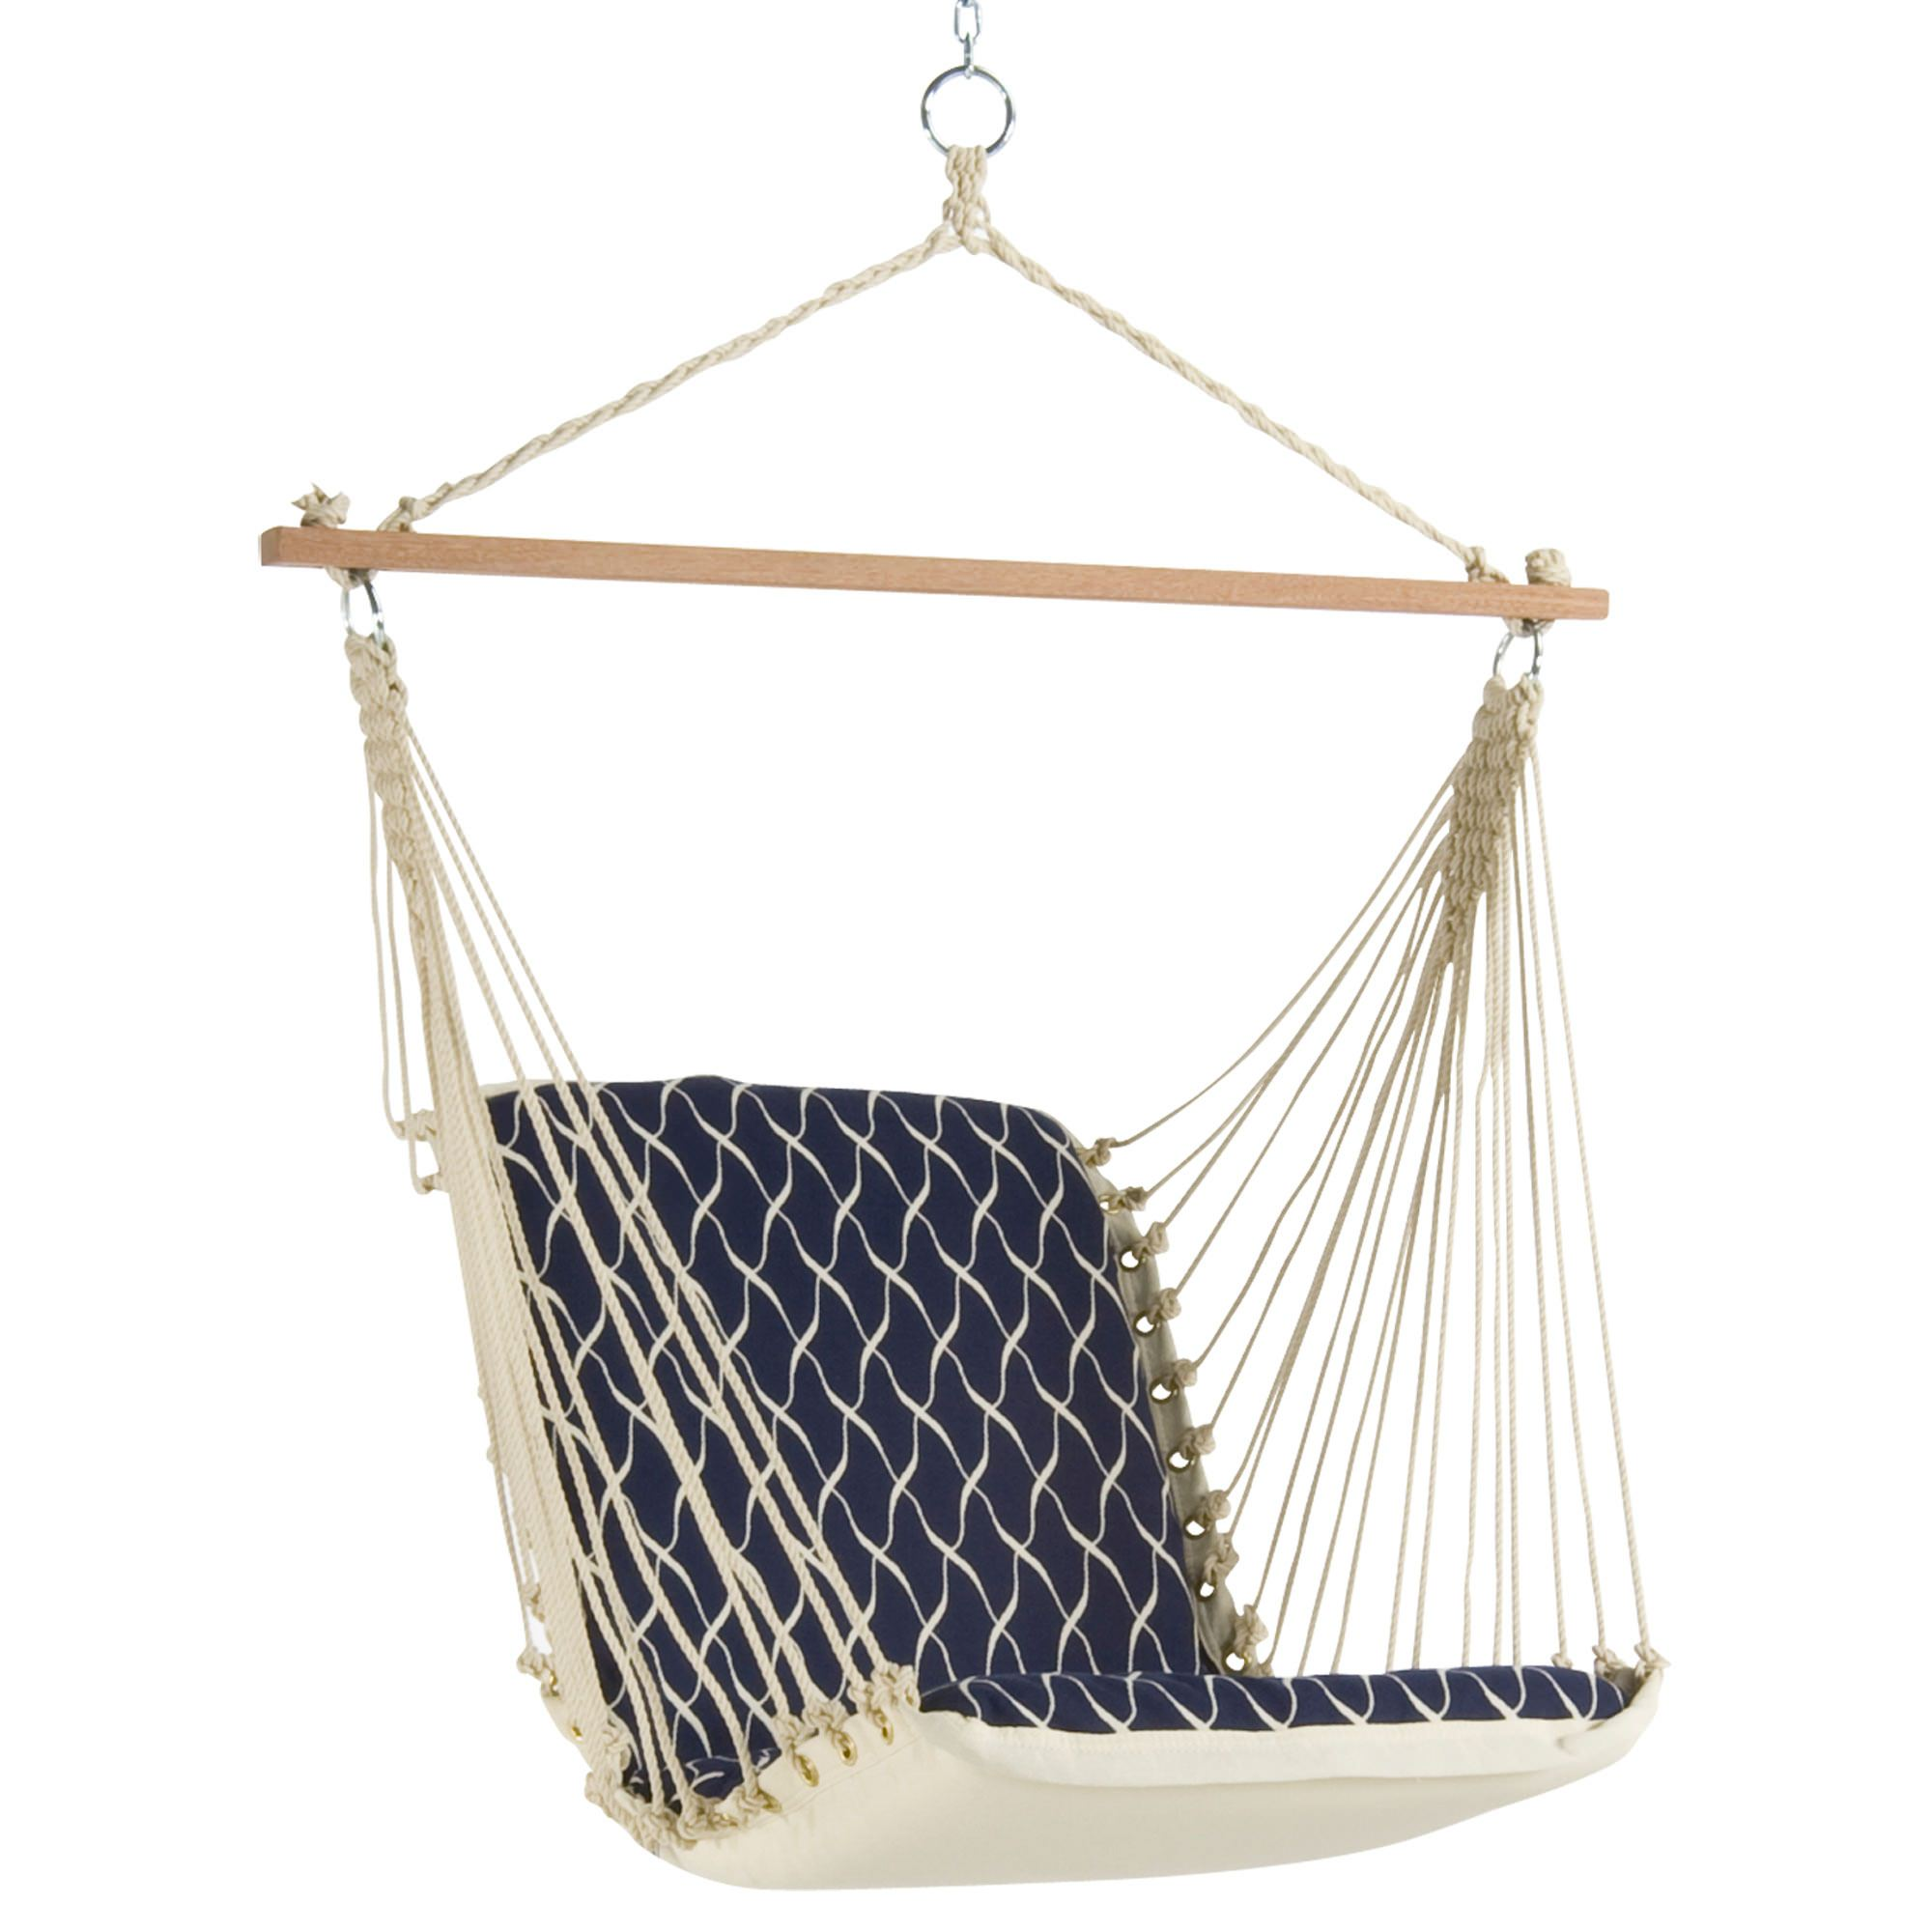 hammock to swing make diy wooden what for in a with how designs look stand chair